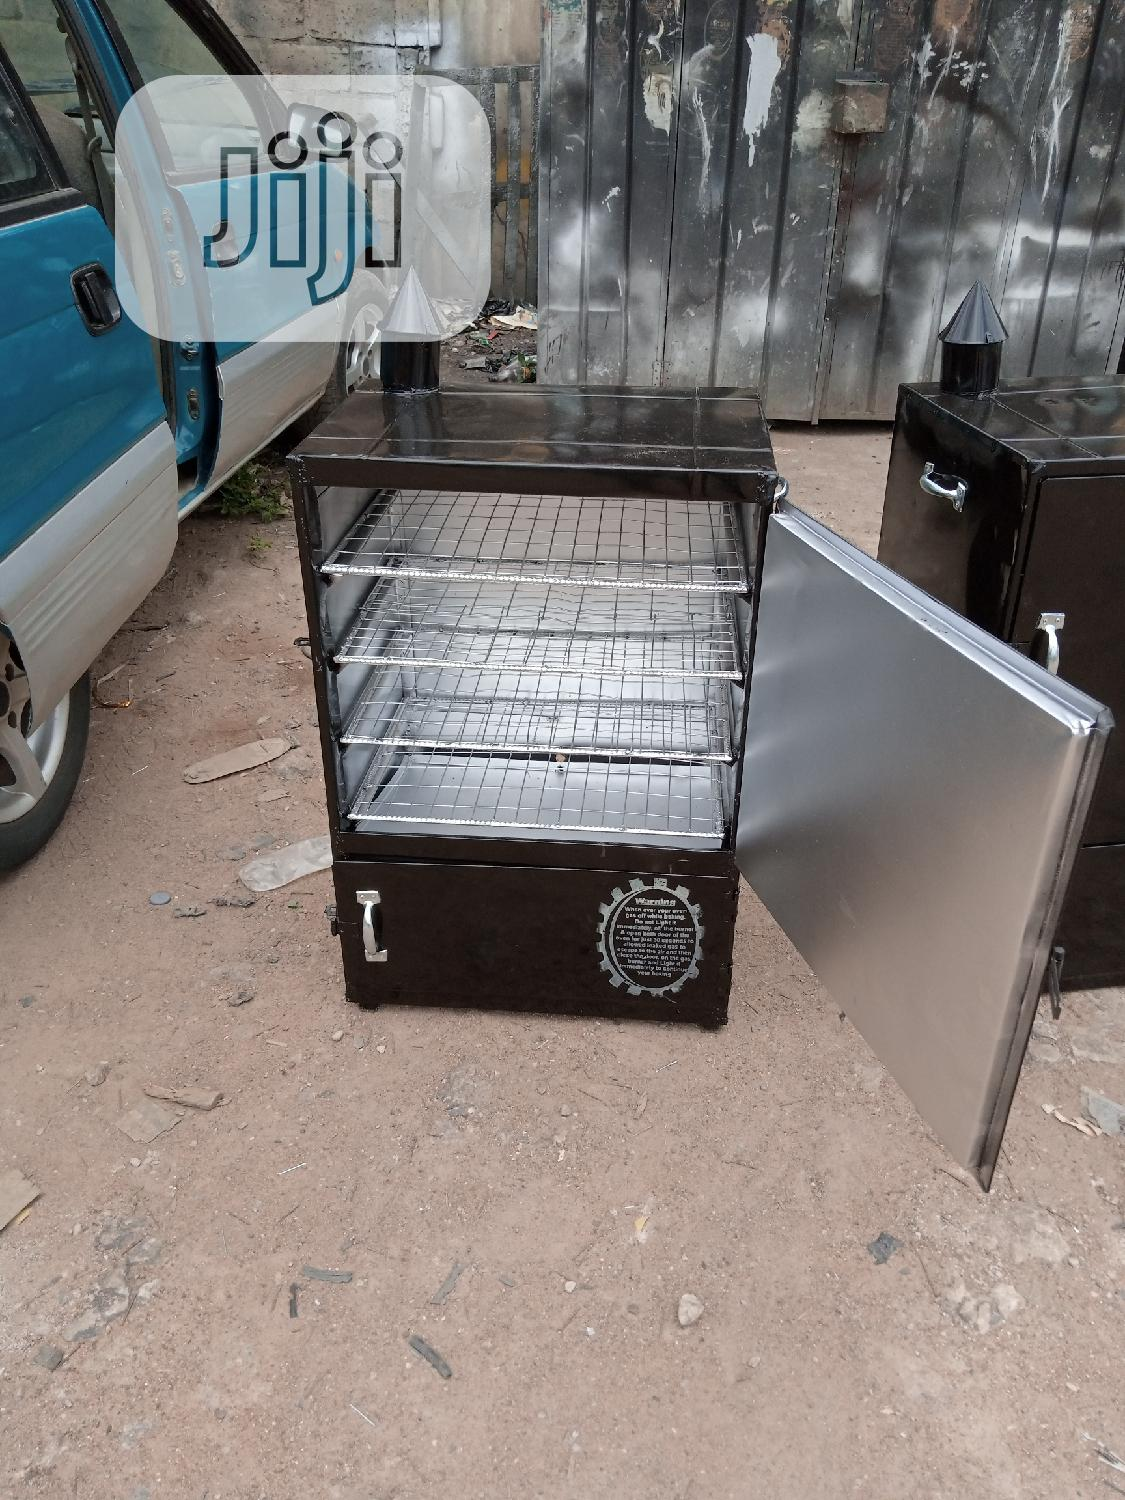 Easytech Charcoal And Gas Fish Dryer Oven Enterprises | Industrial Ovens for sale in Ikeja, Lagos State, Nigeria